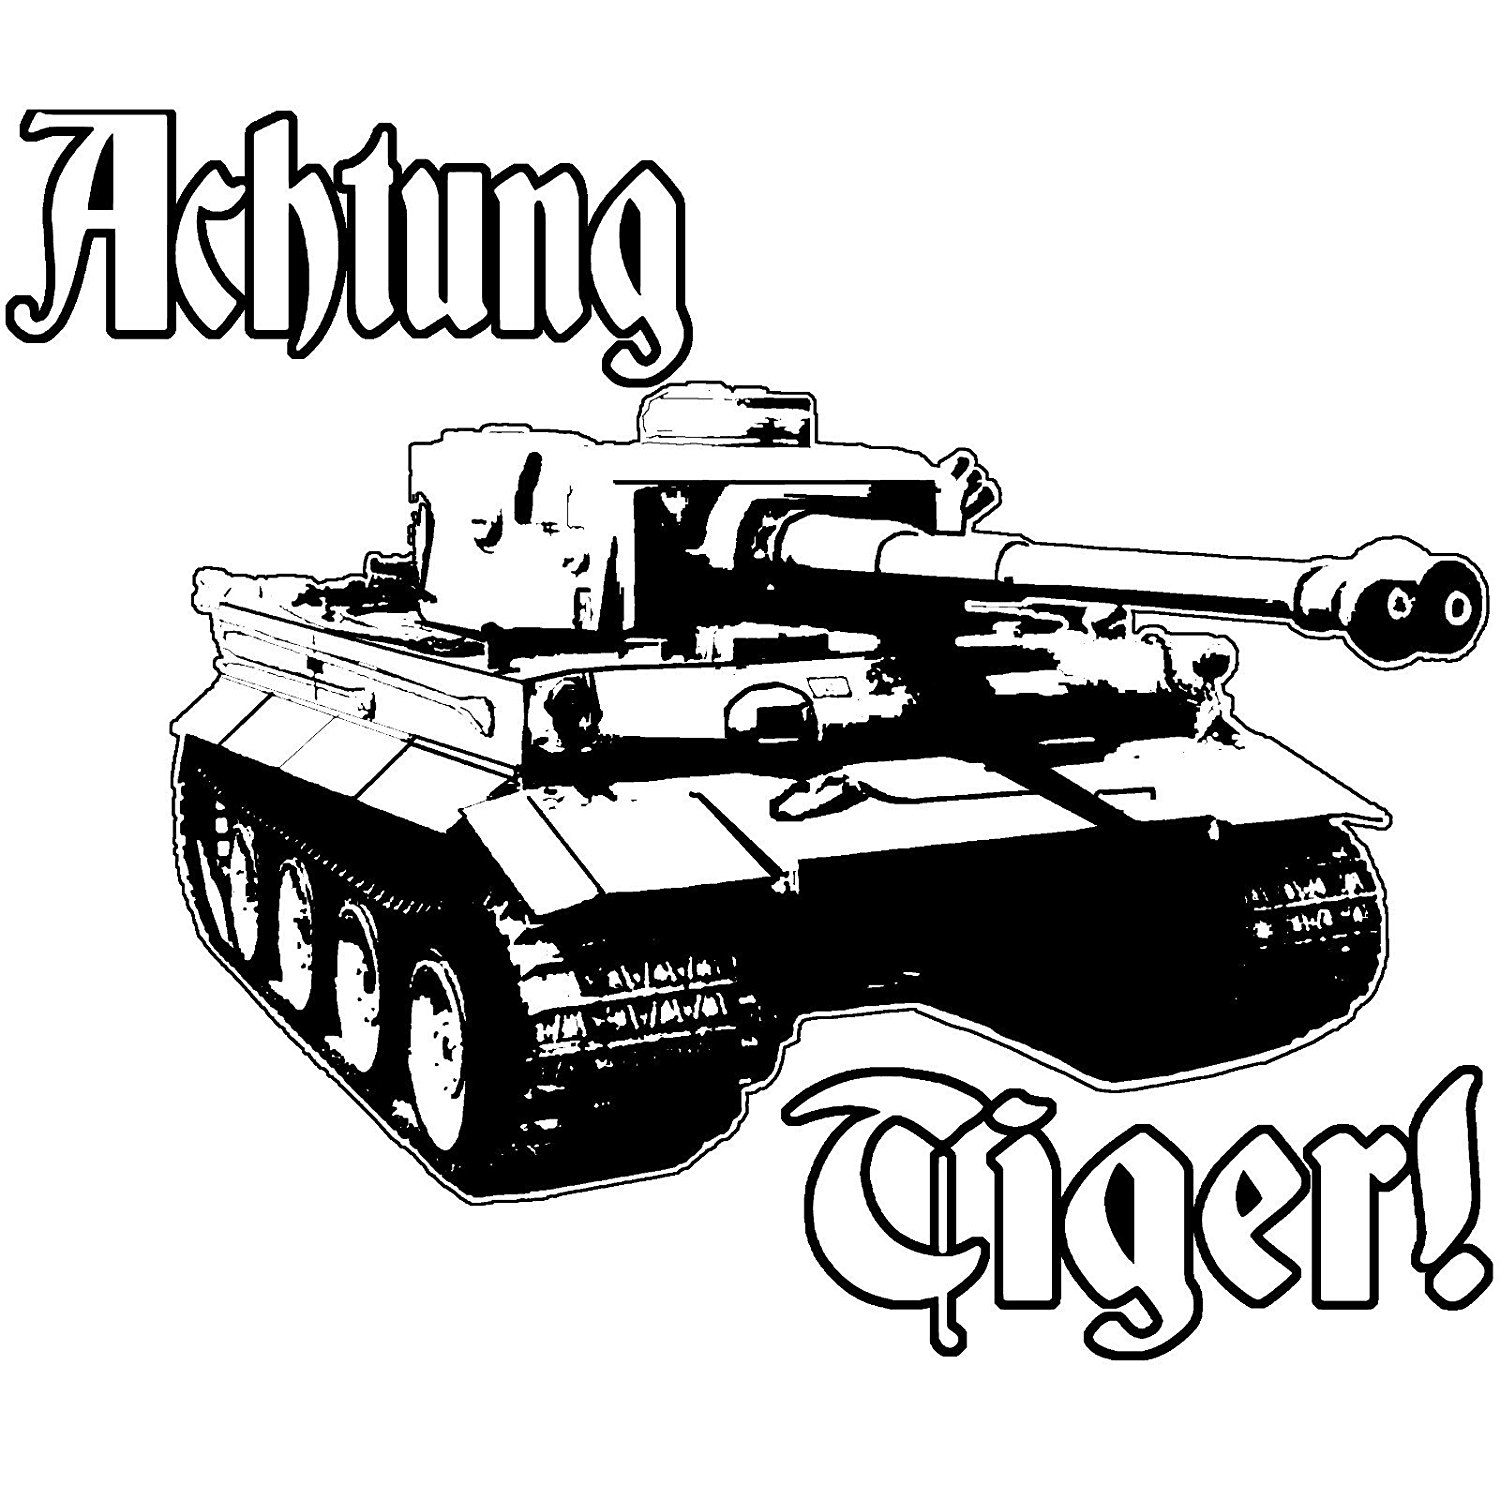 Achtung tiger tank panzer stalingrad world tanks german model rc vinyl decal by achtung t shirt